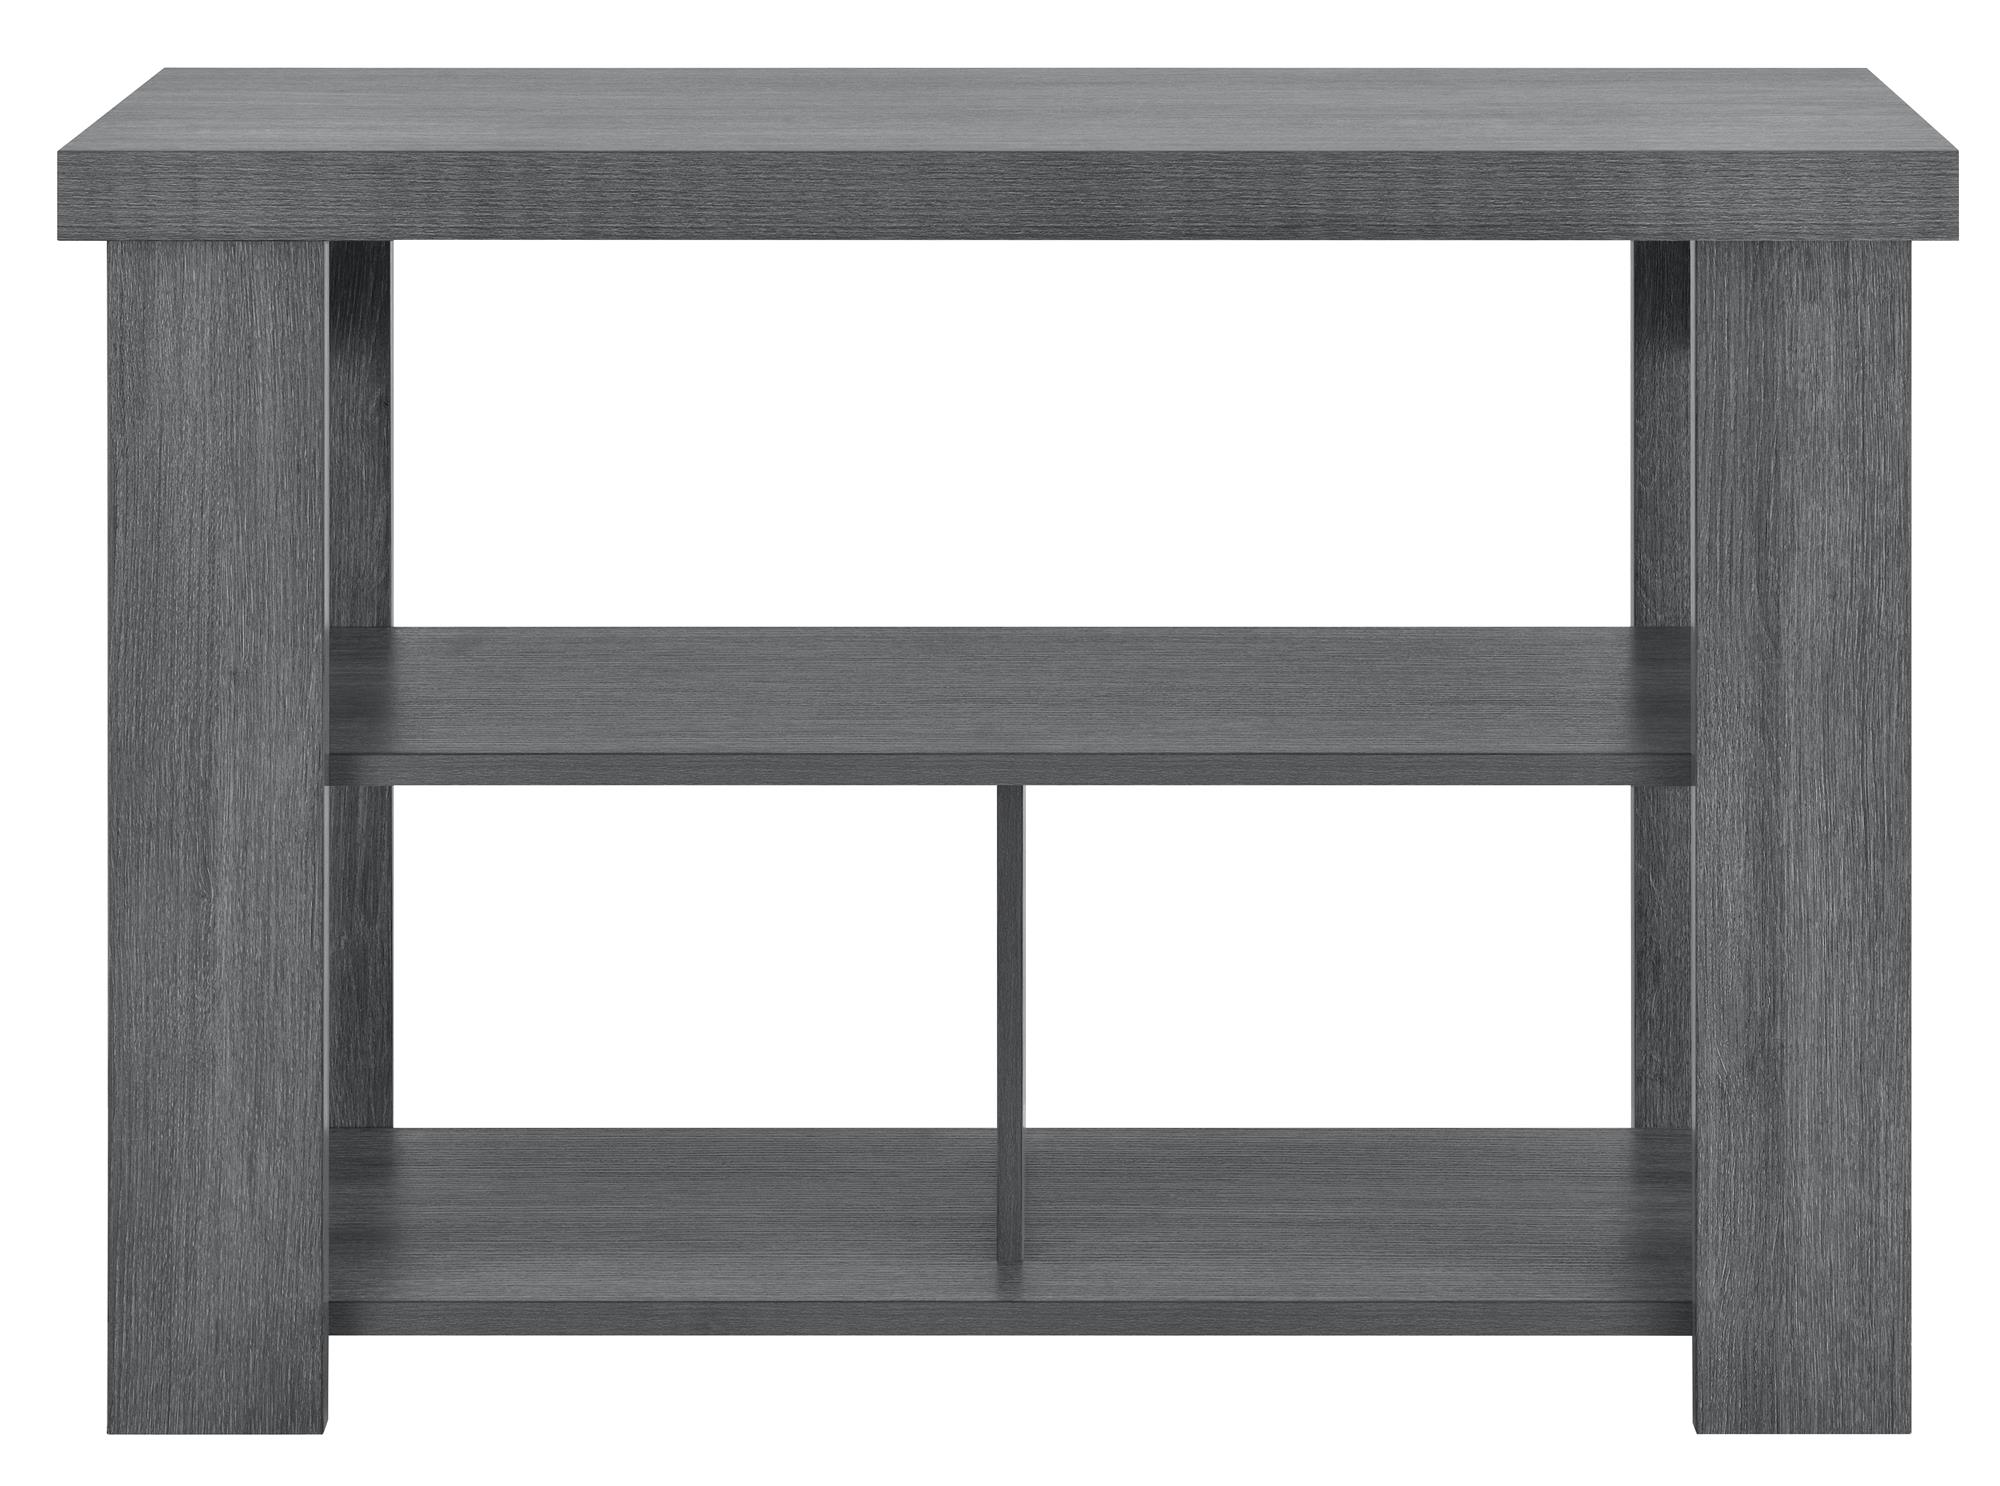 Ameriwood home jensen console table multiple colors walmart geotapseo Choice Image